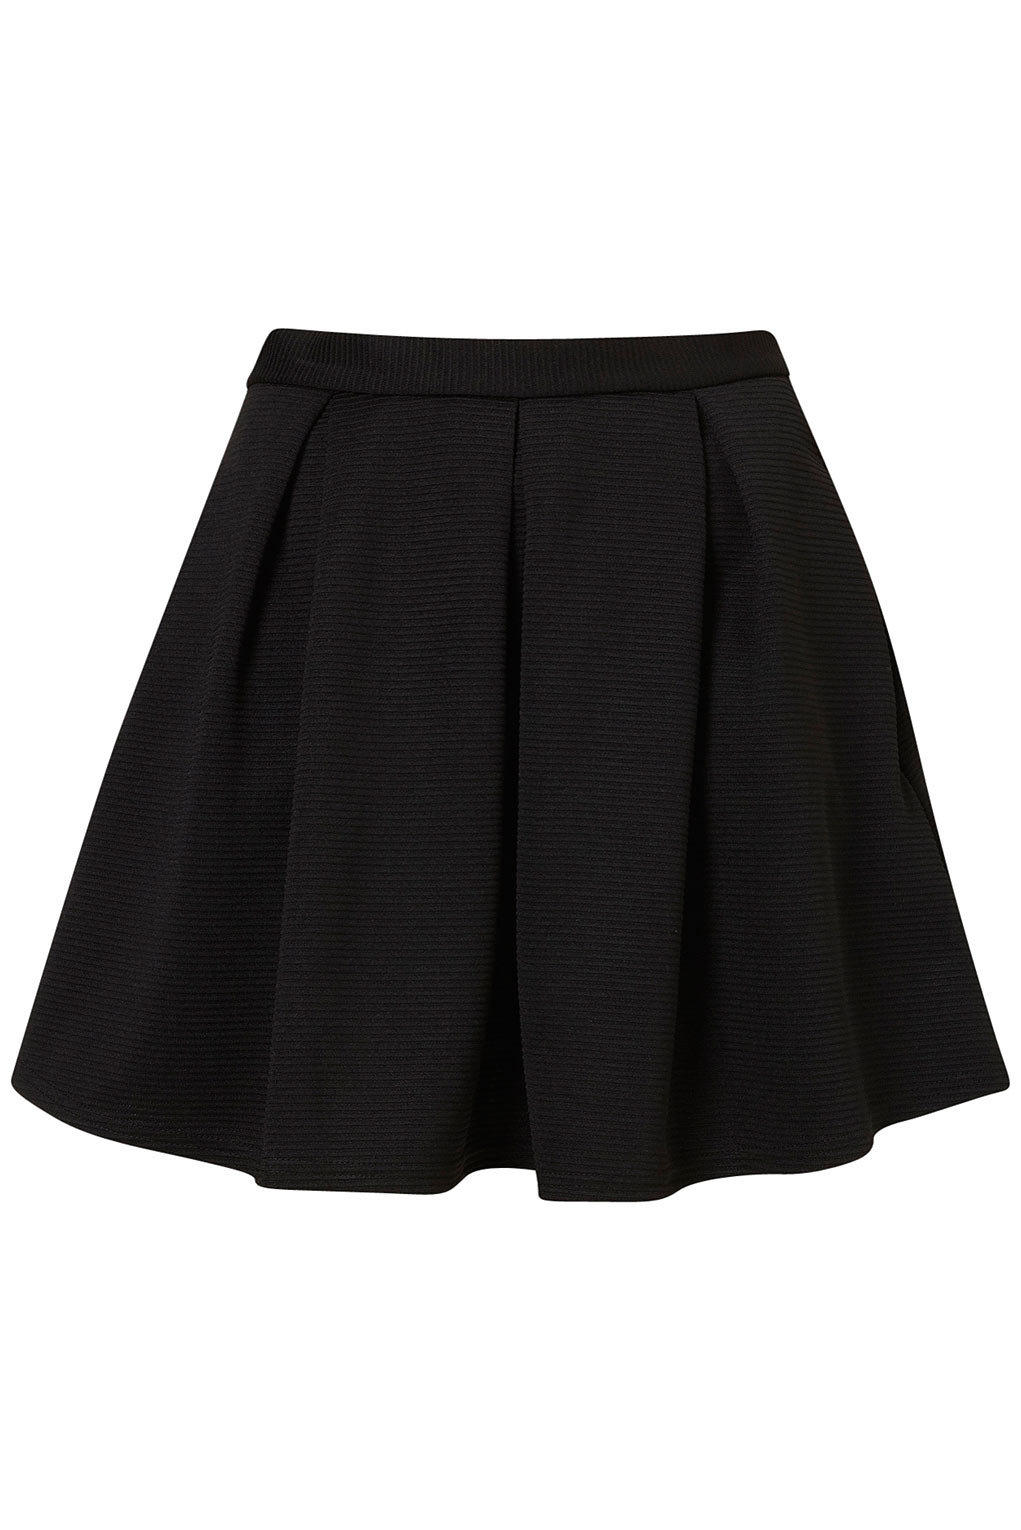 Black skirts probably comprise one of a woman's most important wardrobe items. We have a marvelous selection of black skirts in mini, midi and maxi lengths. We have black skirts with asymmetrical hemlines, and with slits on the sides, fronts or backs.